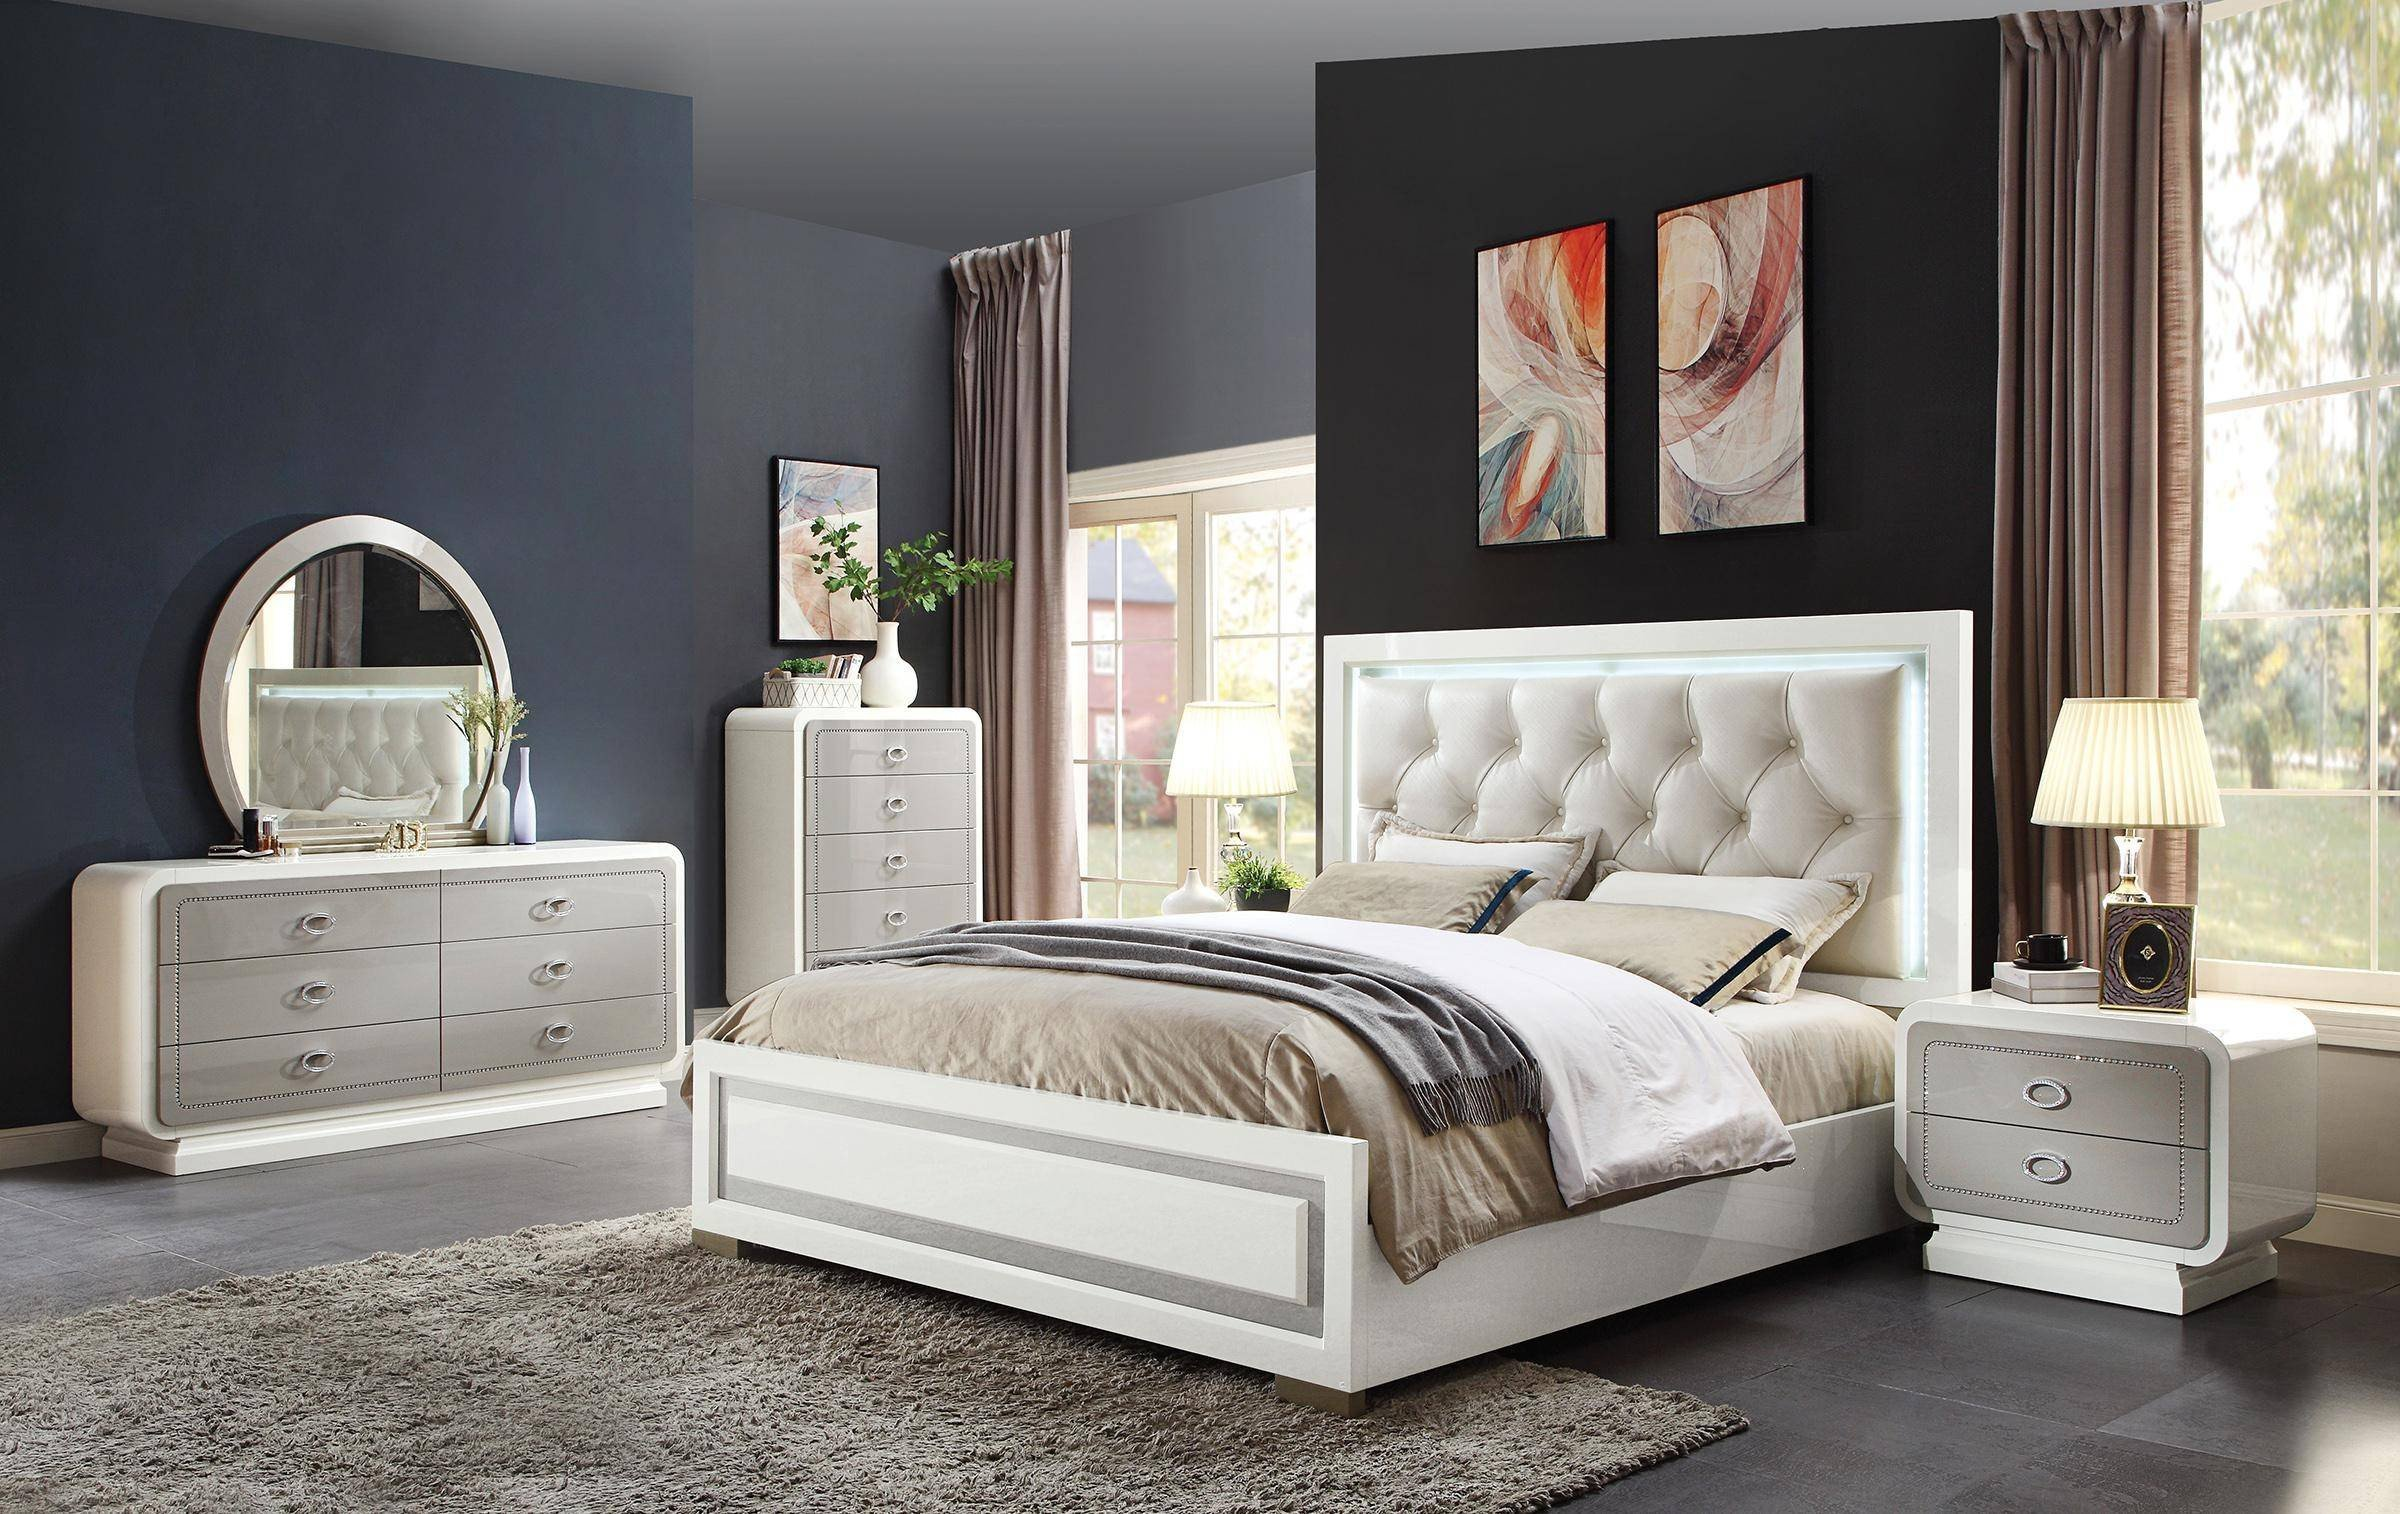 Queen Bedroom Set Cheap Awesome Glam Ivory & Latte High Gloss Queen Bedroom Set 5pcs